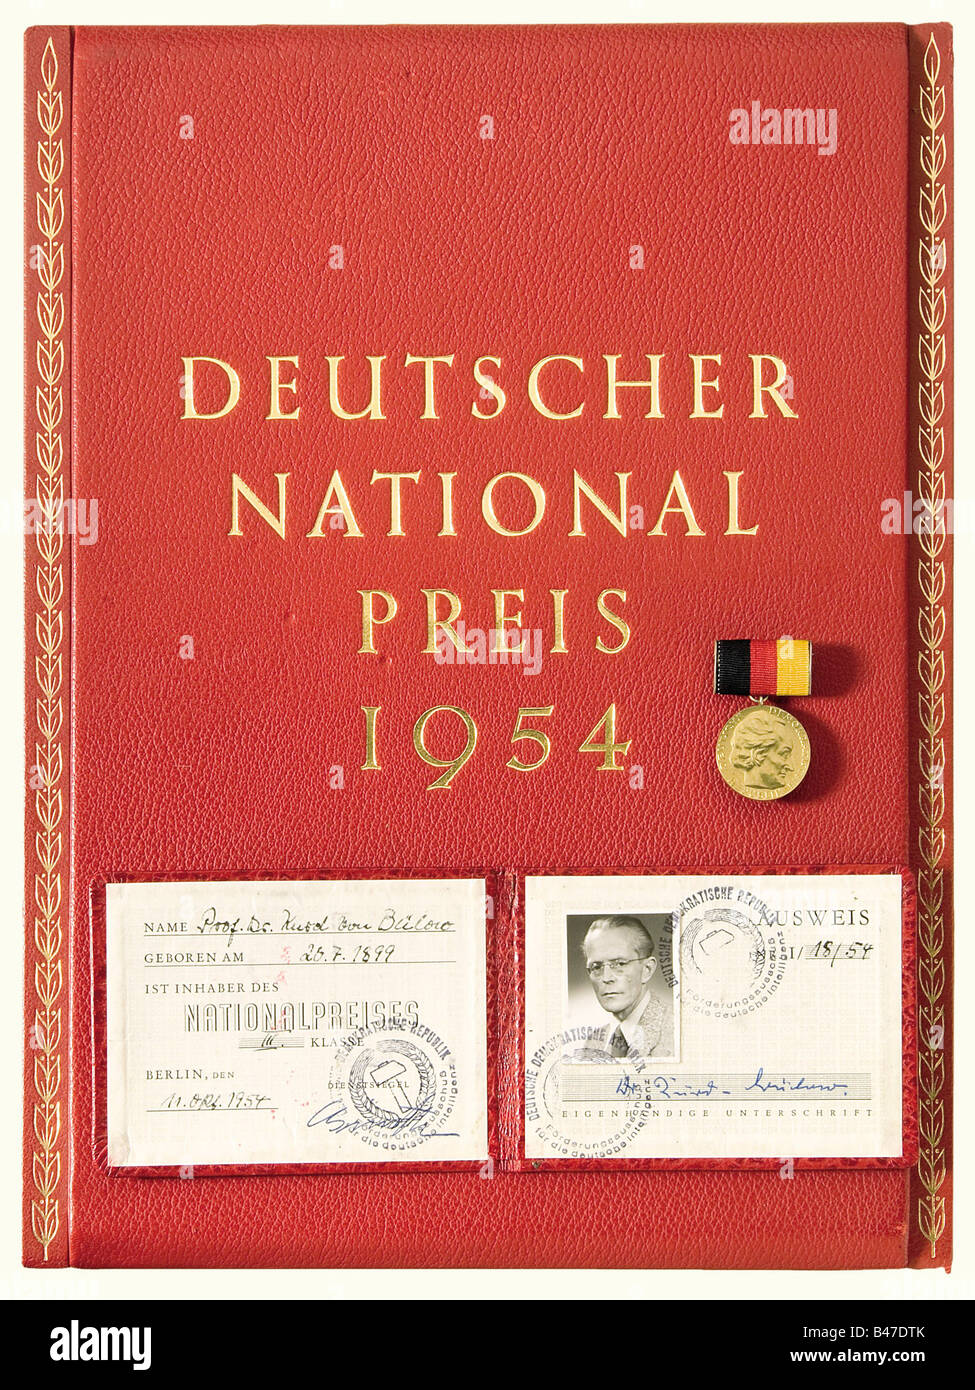 A German National Prize for Science and Technology III Class., Awarded to Professor Kurd von Bülow in 1954. - Stock Image